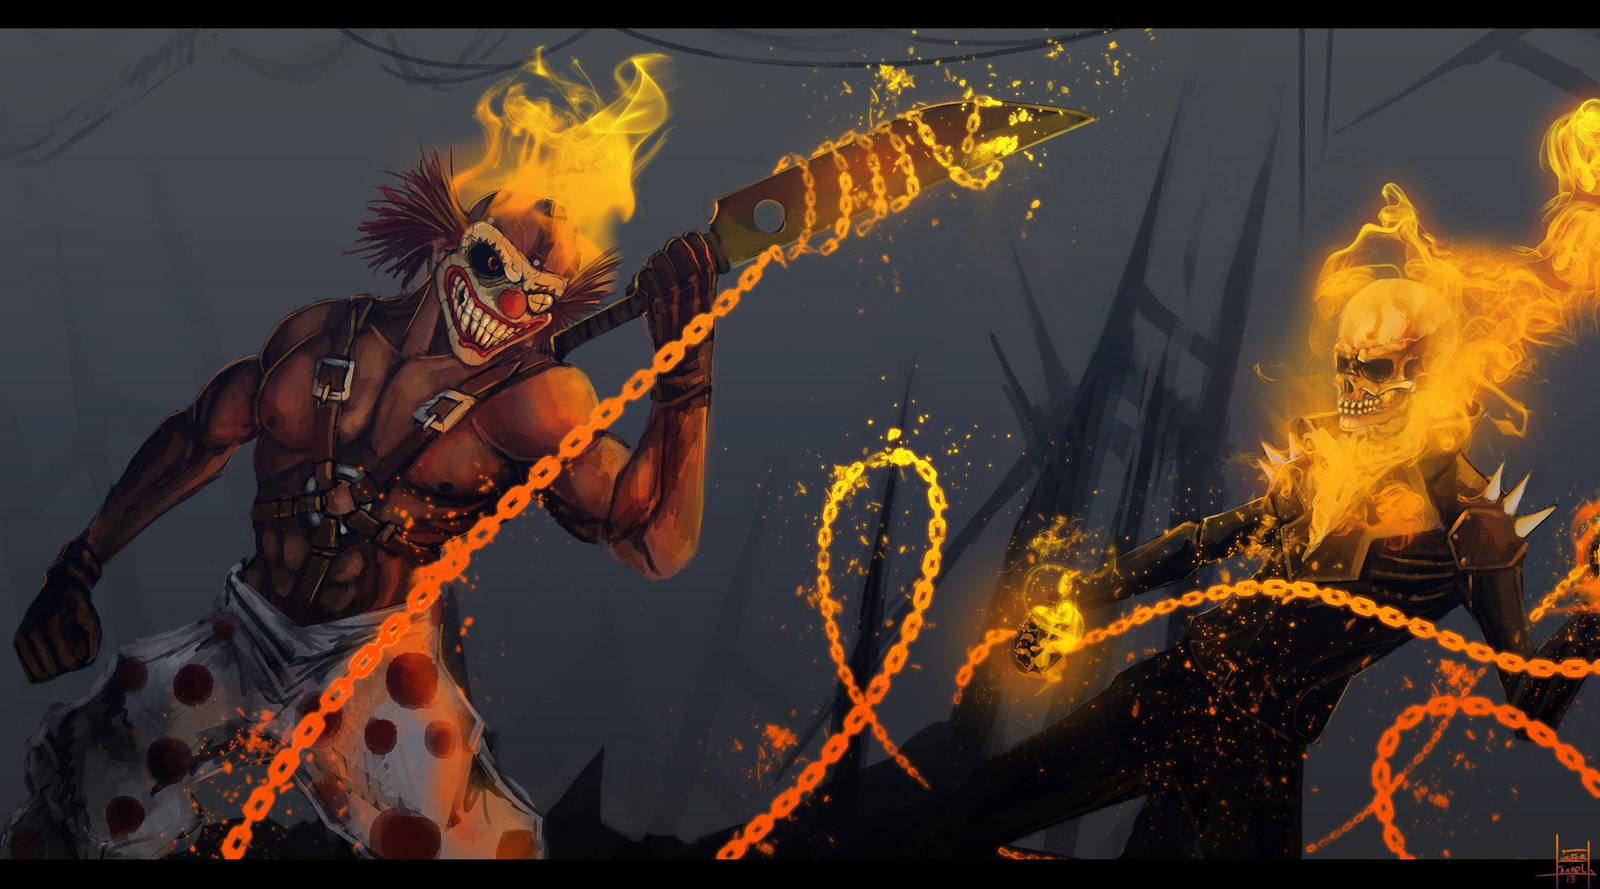 sweet_tooth_vs_ghost_rider_by_thexartxofxluxifer-d6l72gy